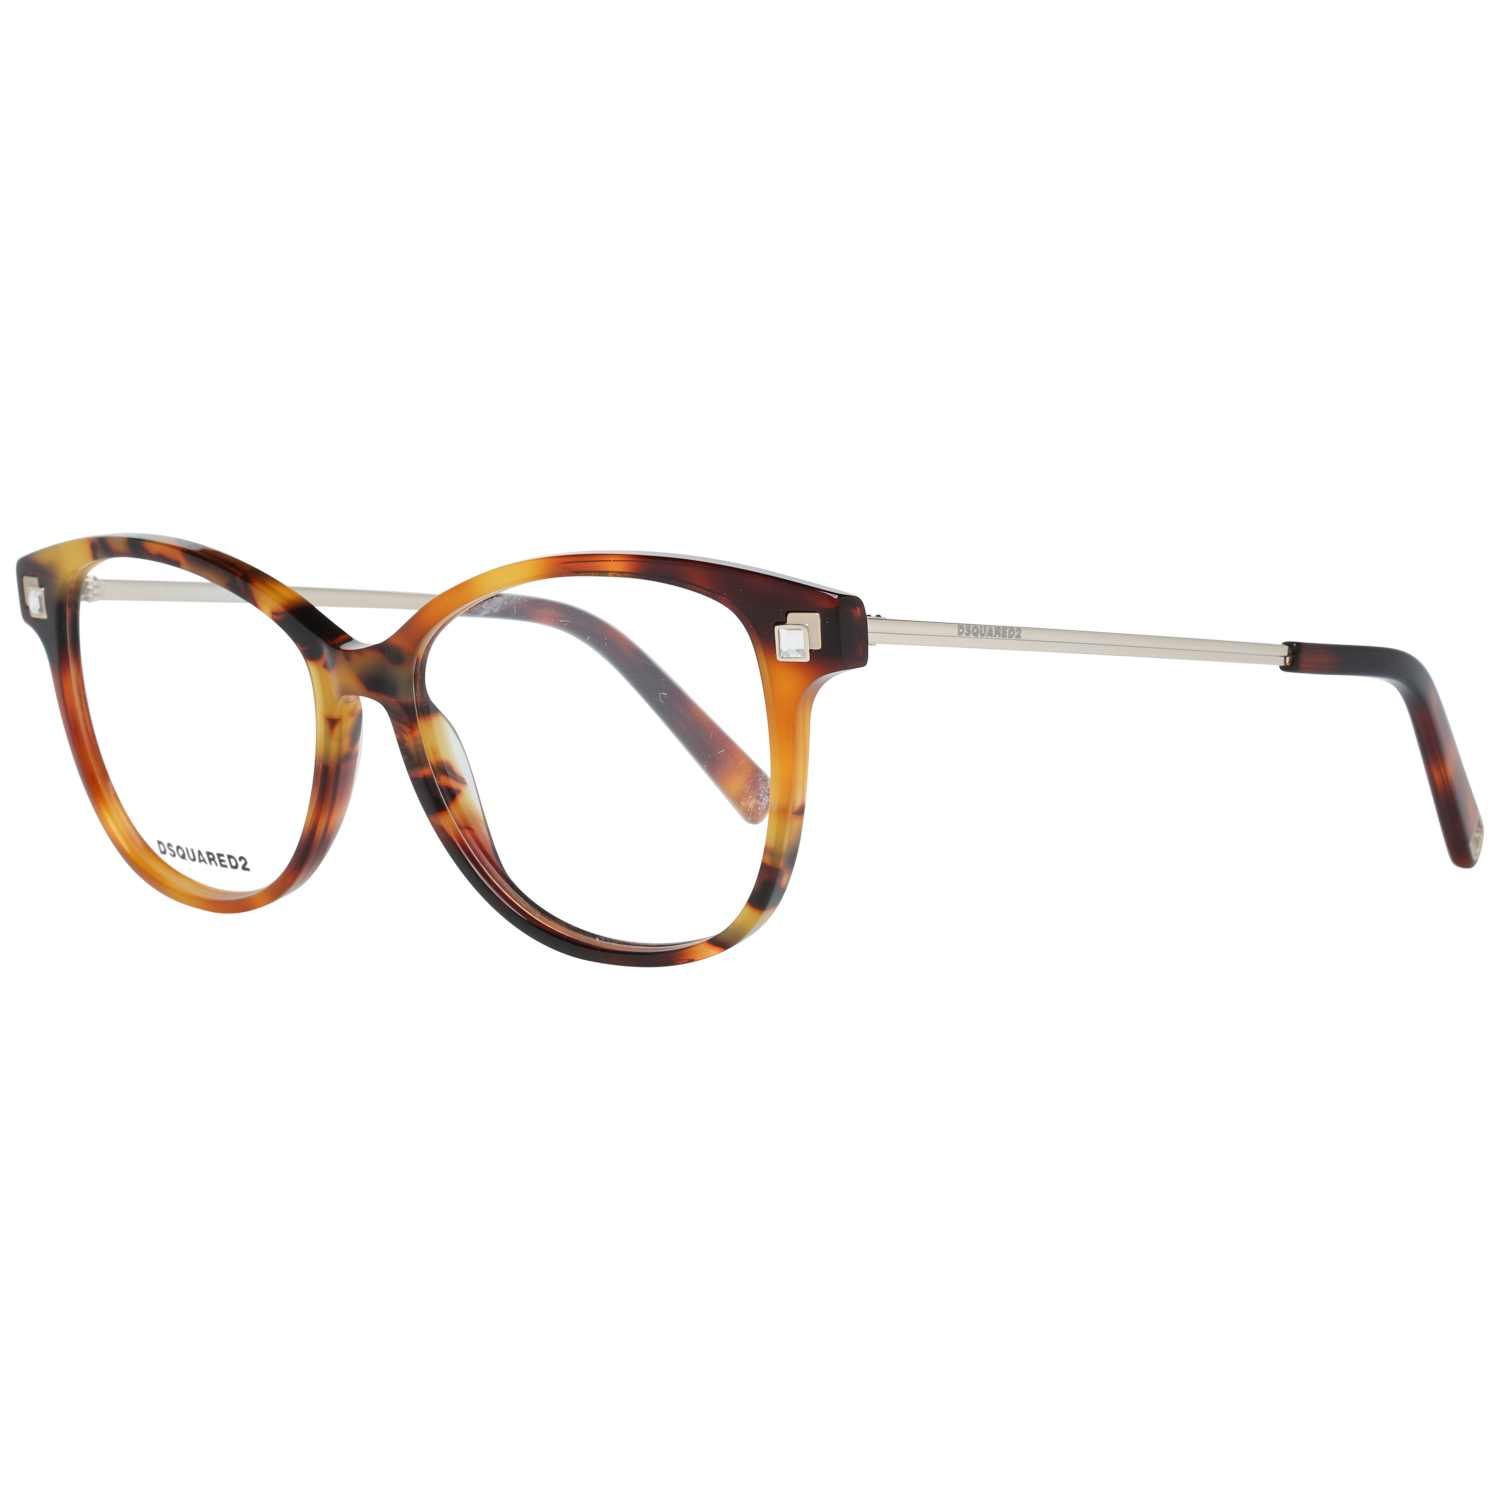 Dsquared2 Optical Frame DQ5287 056 53 Brown